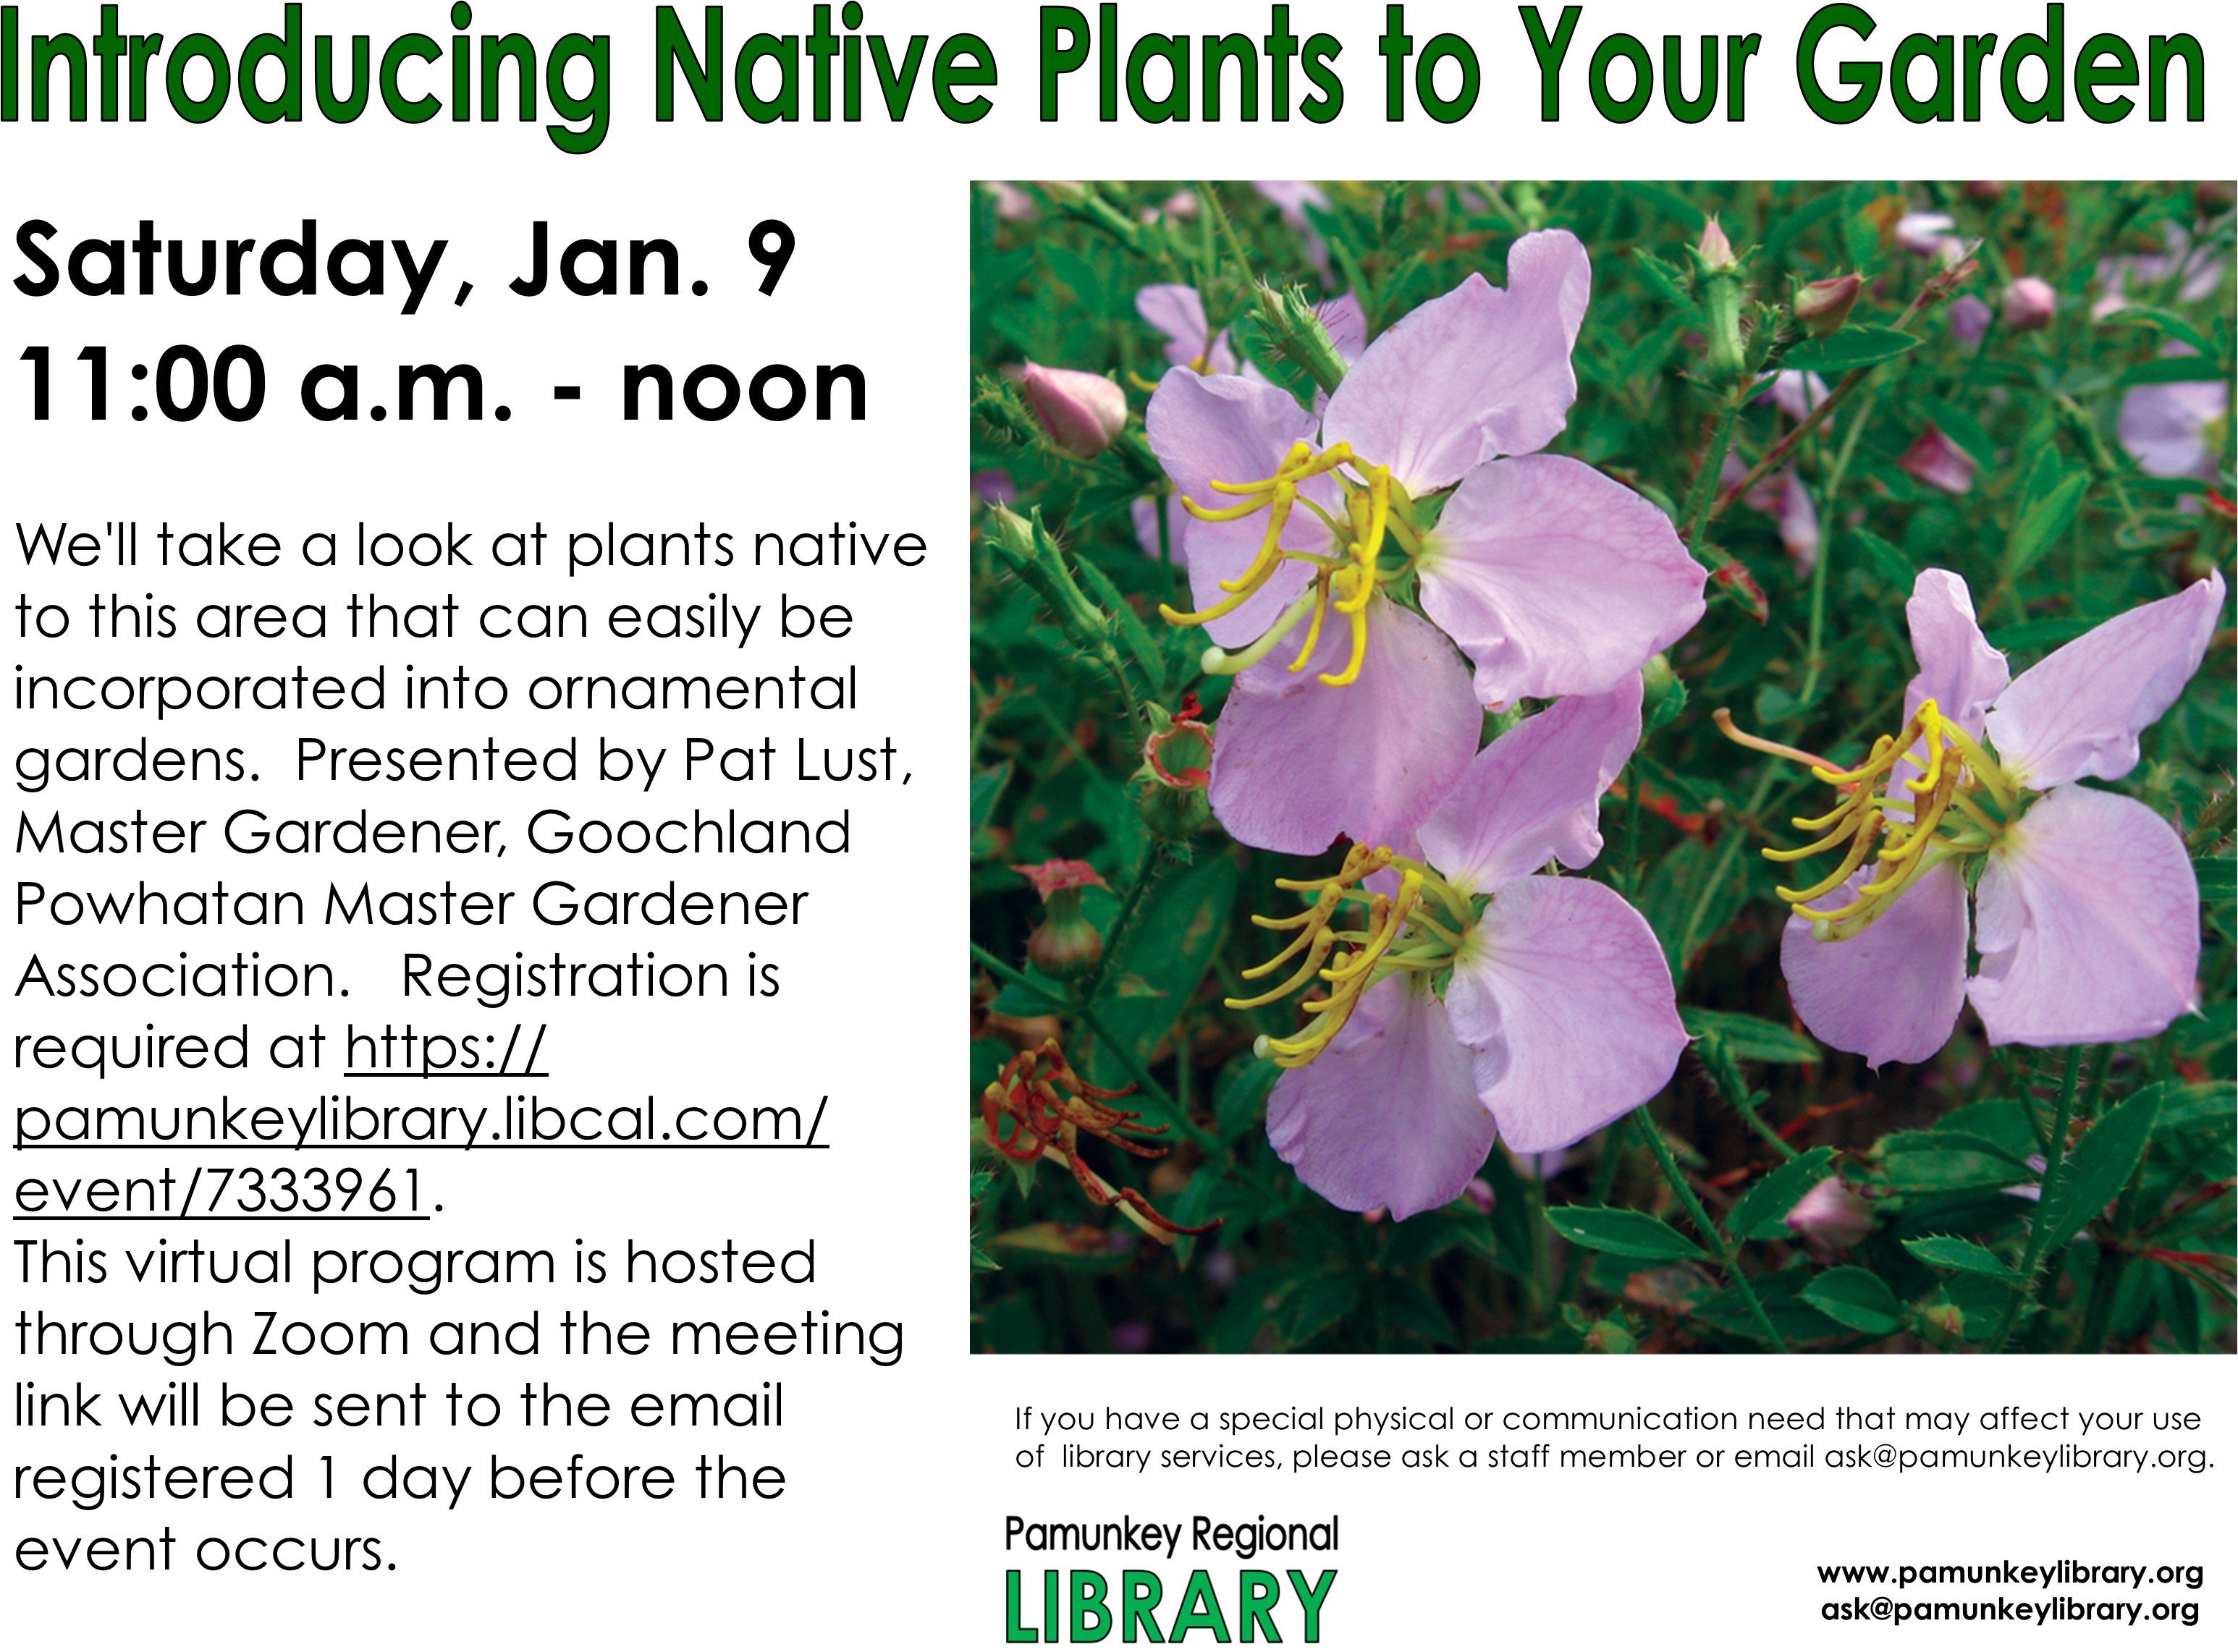 VIRTUAL - Introducing Native Plants into Your Traditional Garden